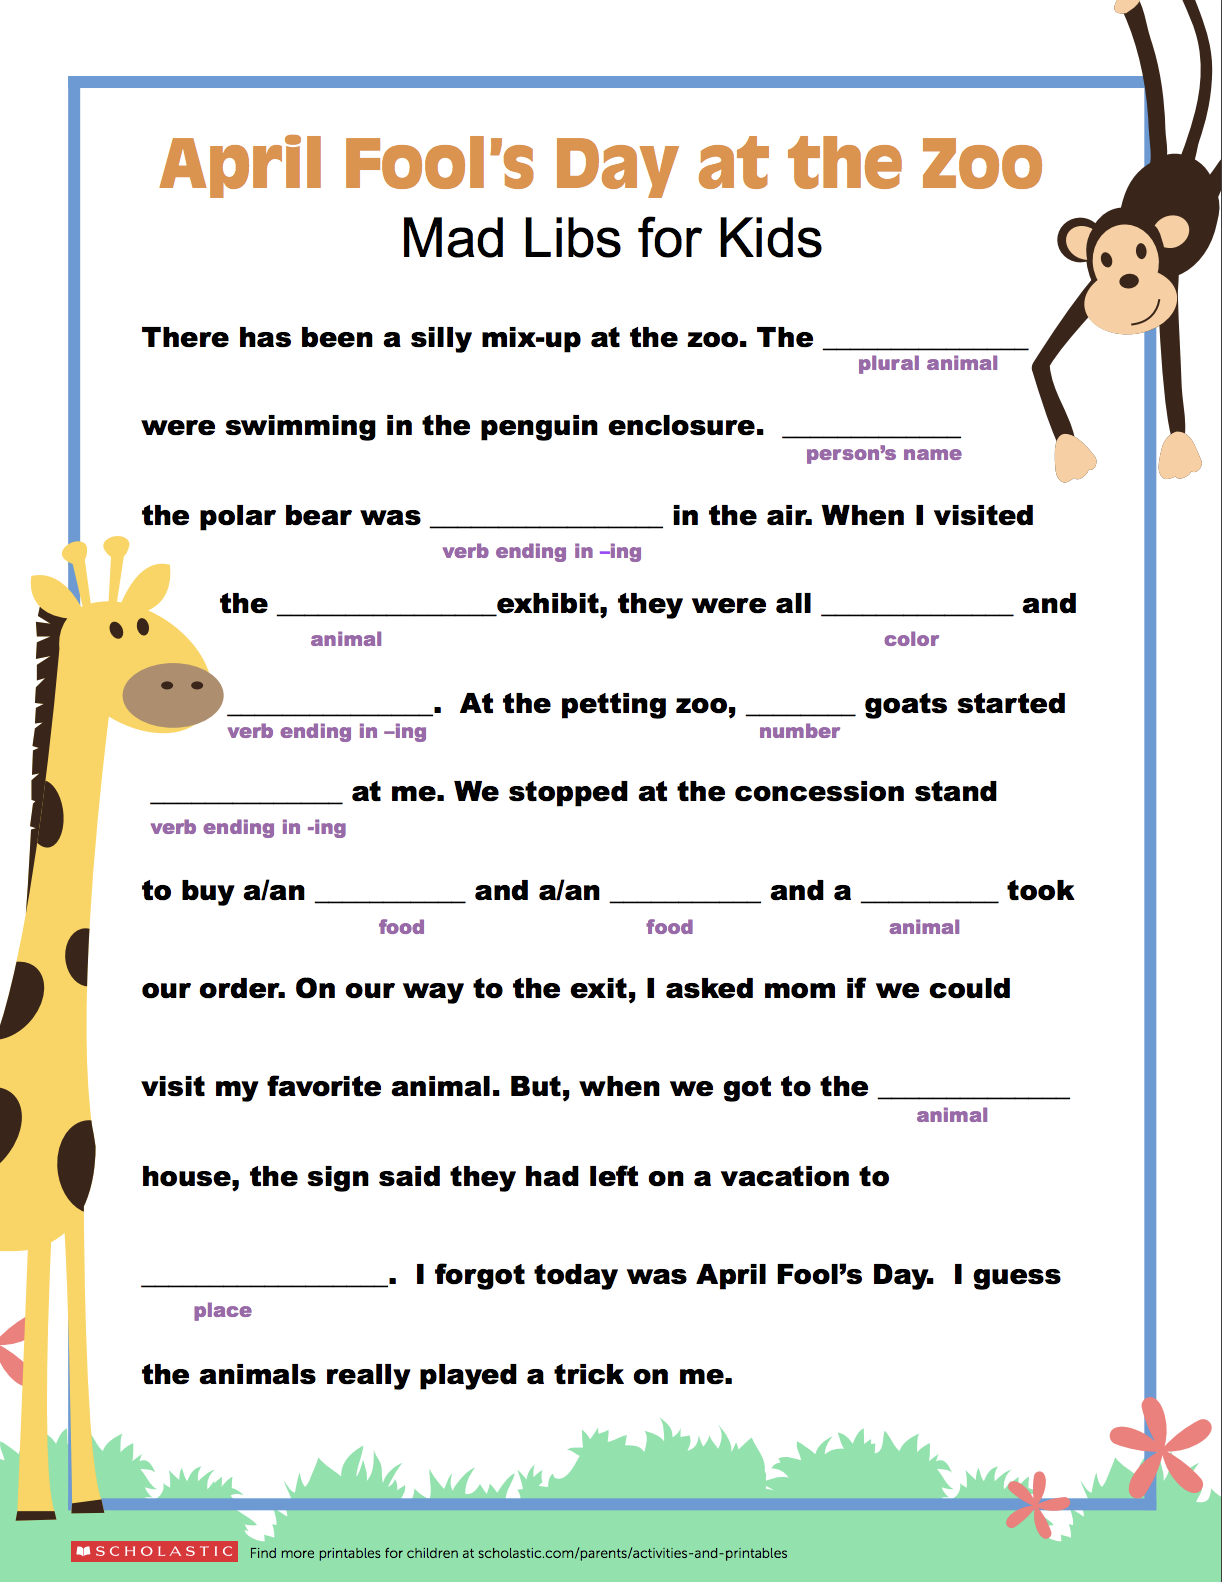 small resolution of Tickle your creative writer's funny bone with this zany Mad Libs printable  that's perfect for April Fool's Day! 📝   Kids mad libs